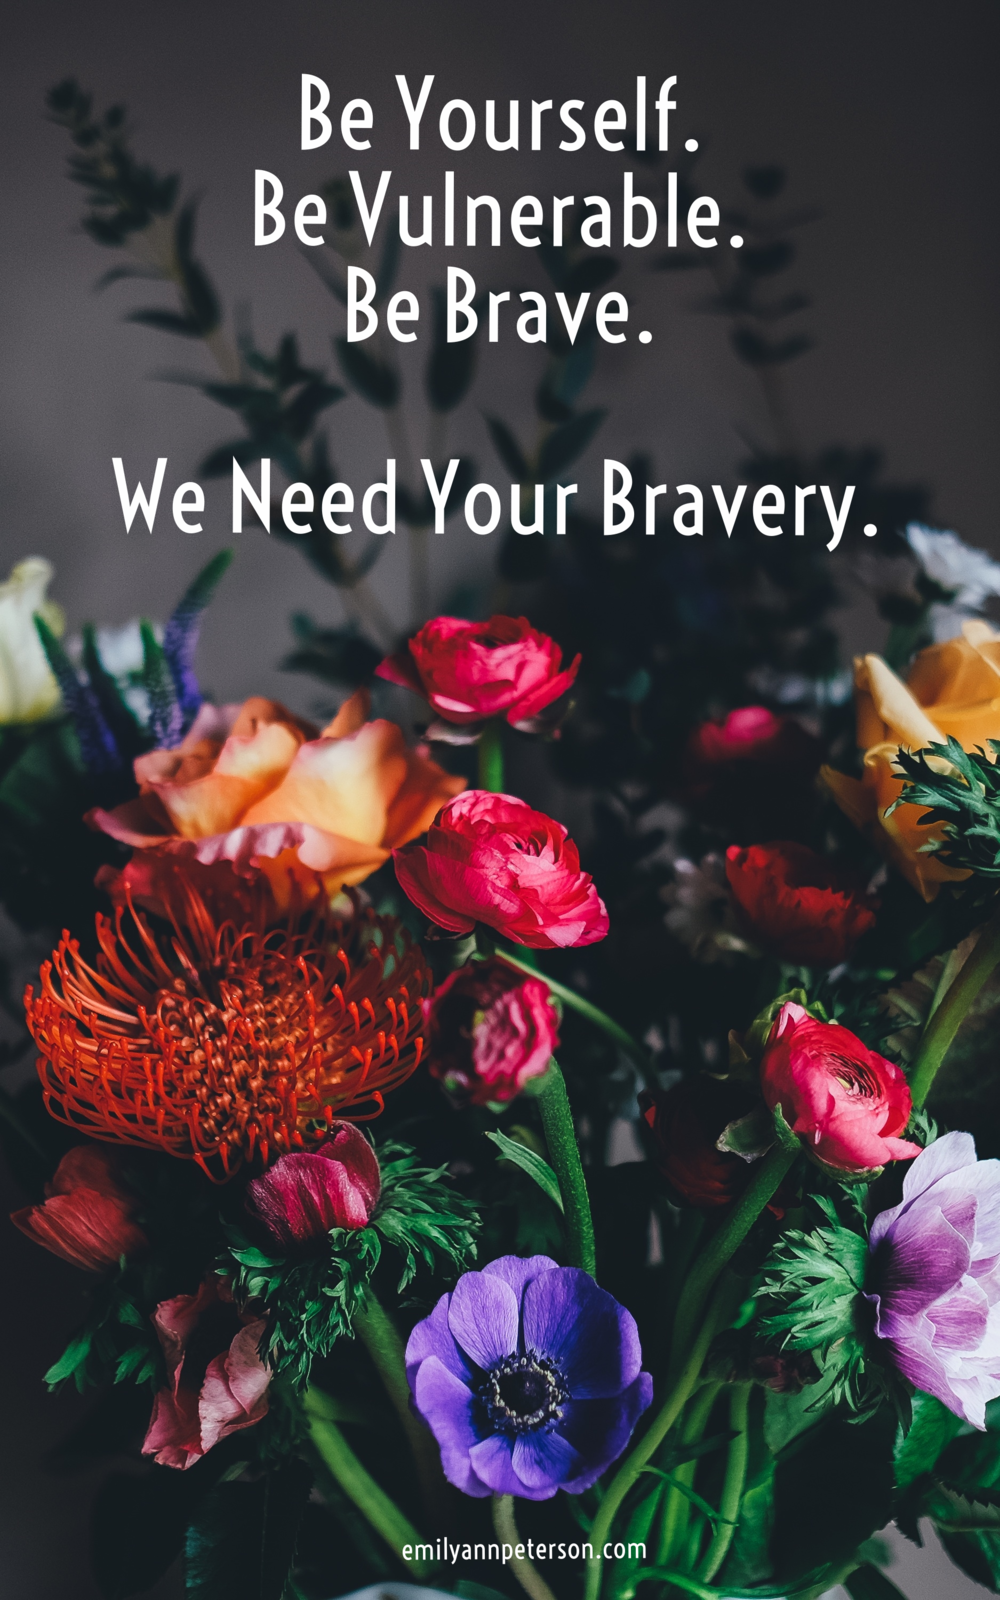 We Need Your Bravery - EmilyAnnPeterson.com